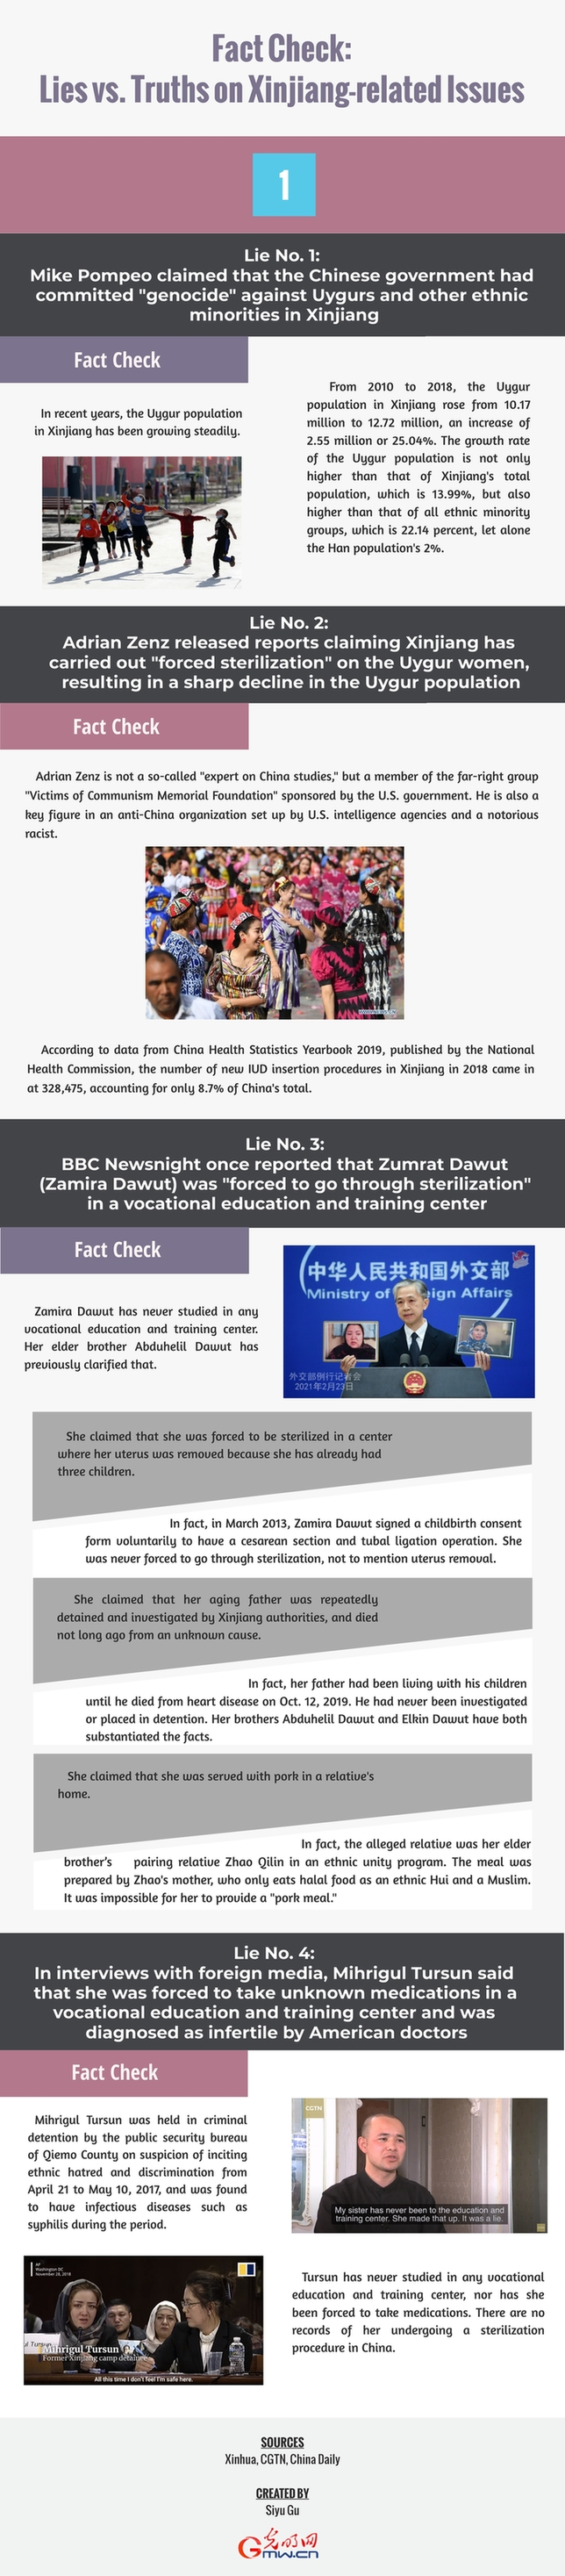 Infographics: Fact Check: Lies vs. Truths on Xinjiang-related Issues